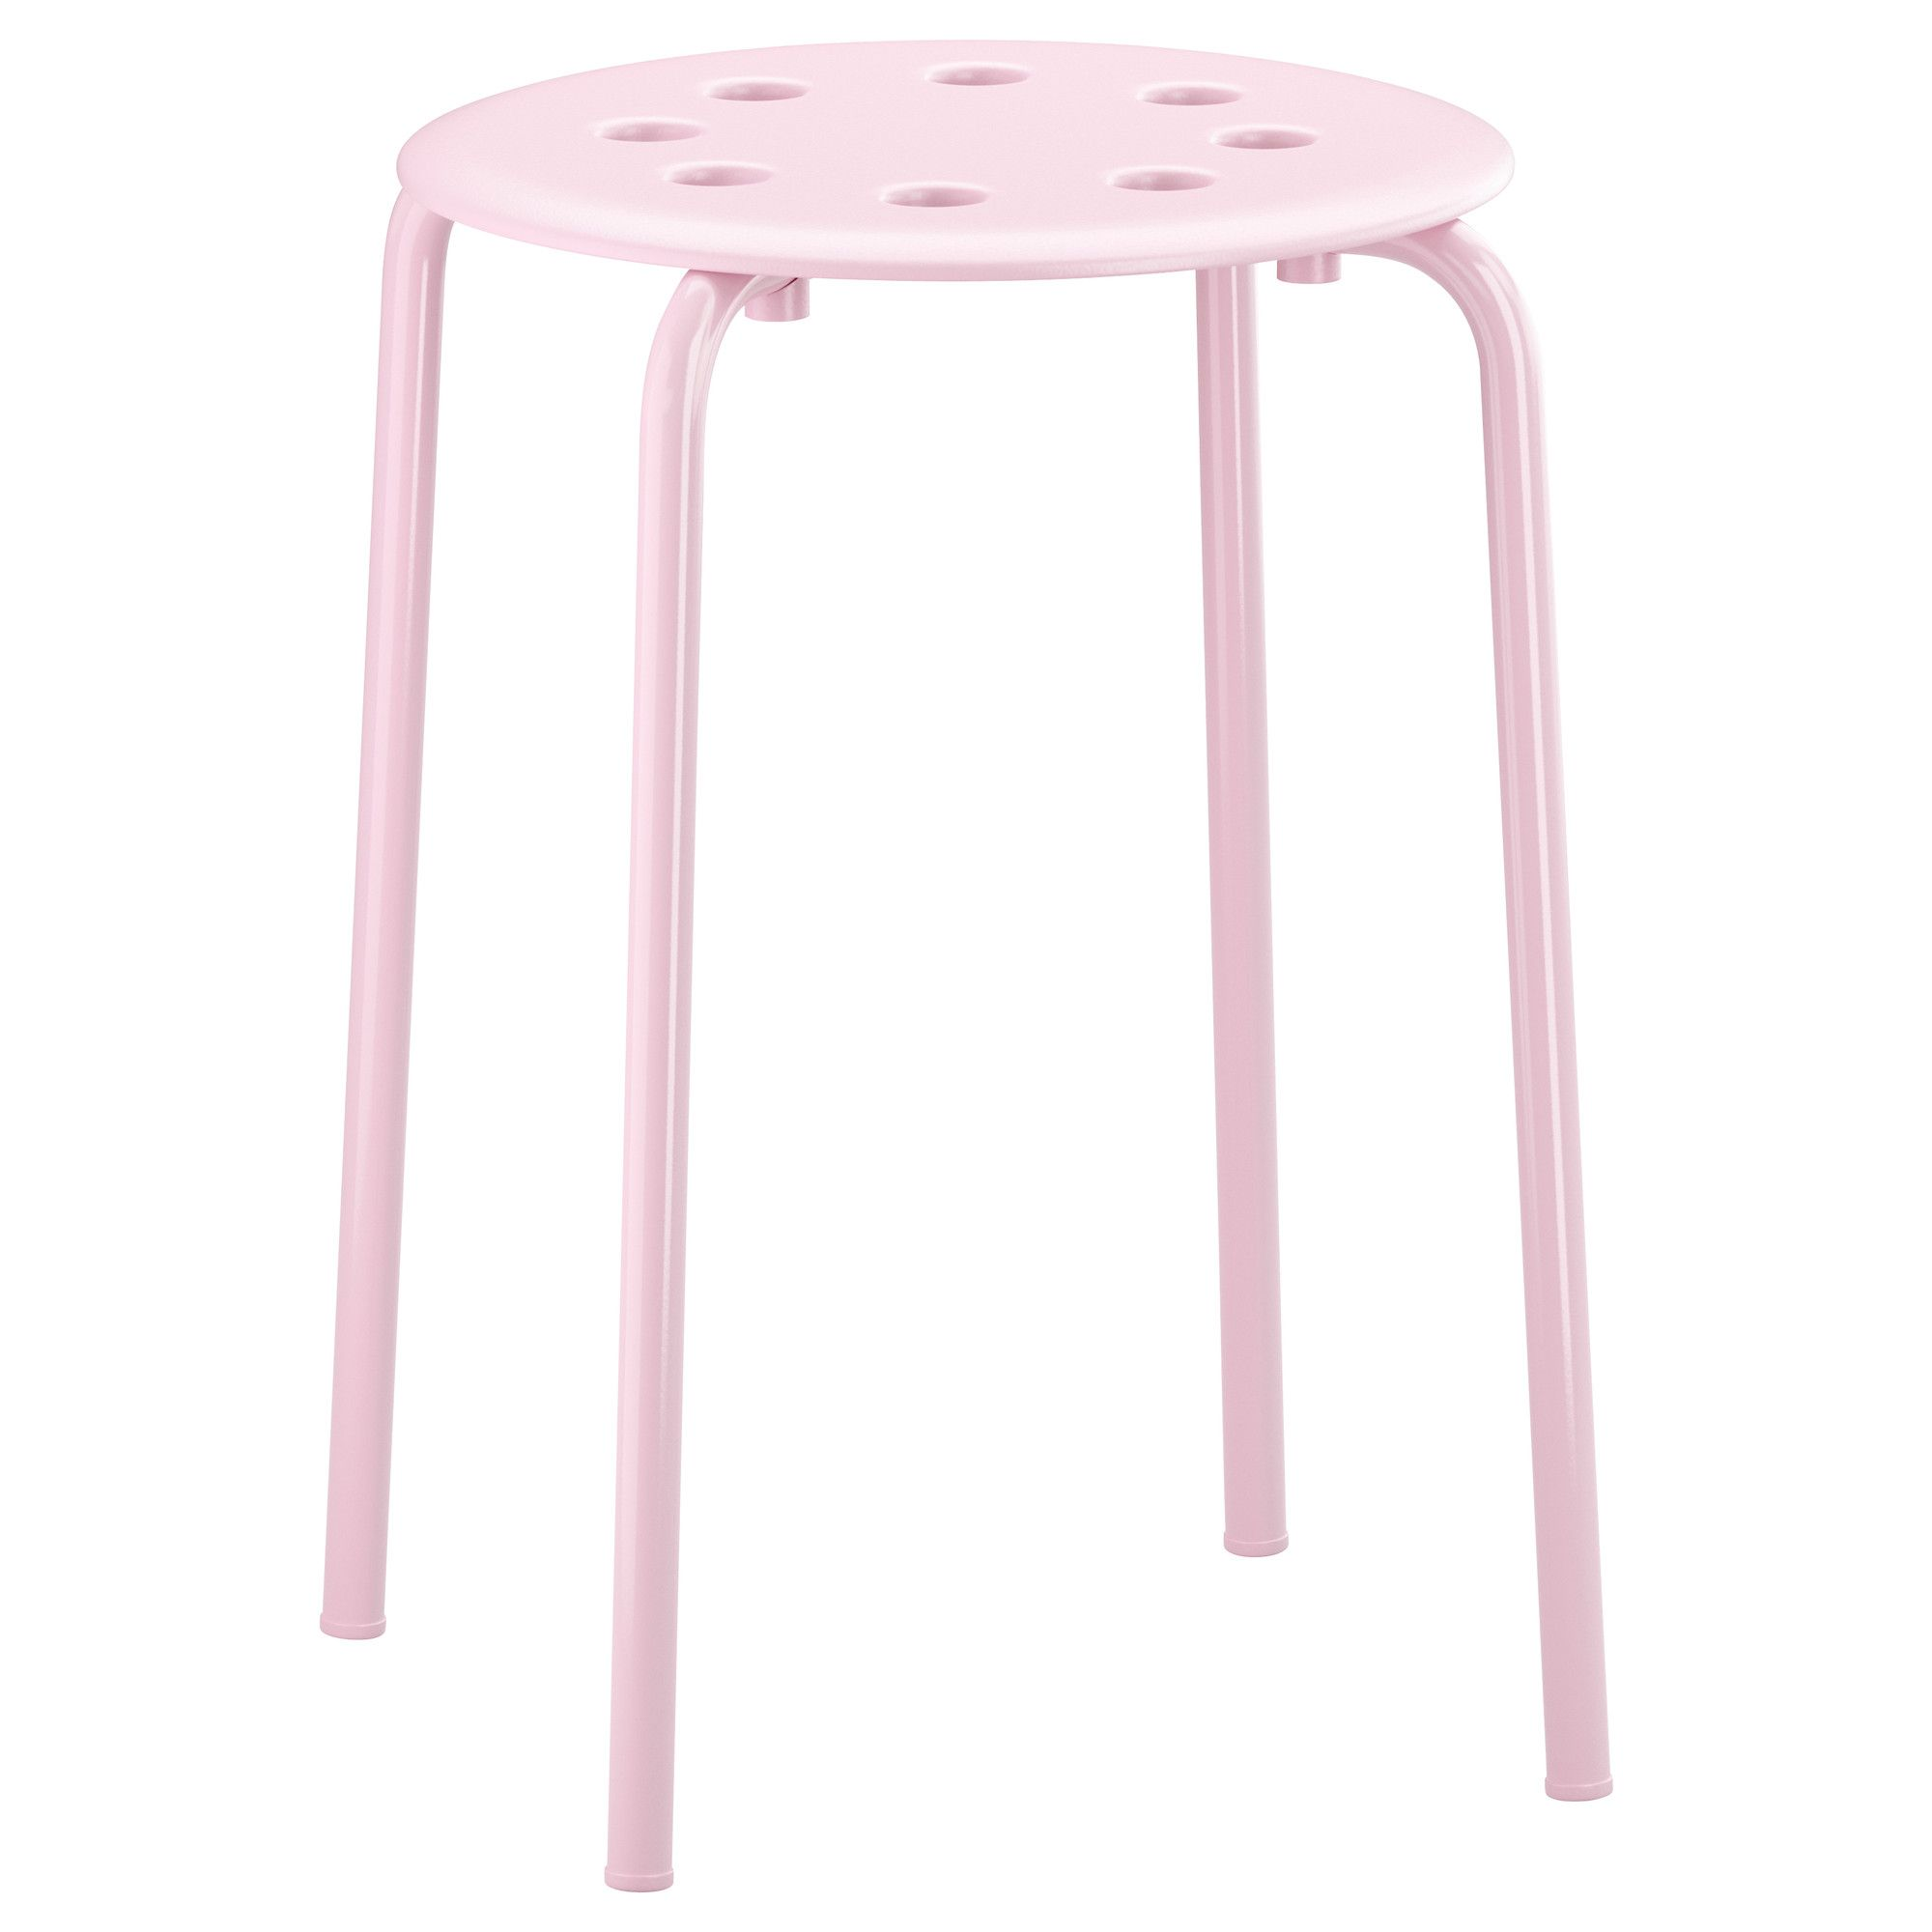 stunning marius stool light pink ikea ella with lampadaire. Black Bedroom Furniture Sets. Home Design Ideas